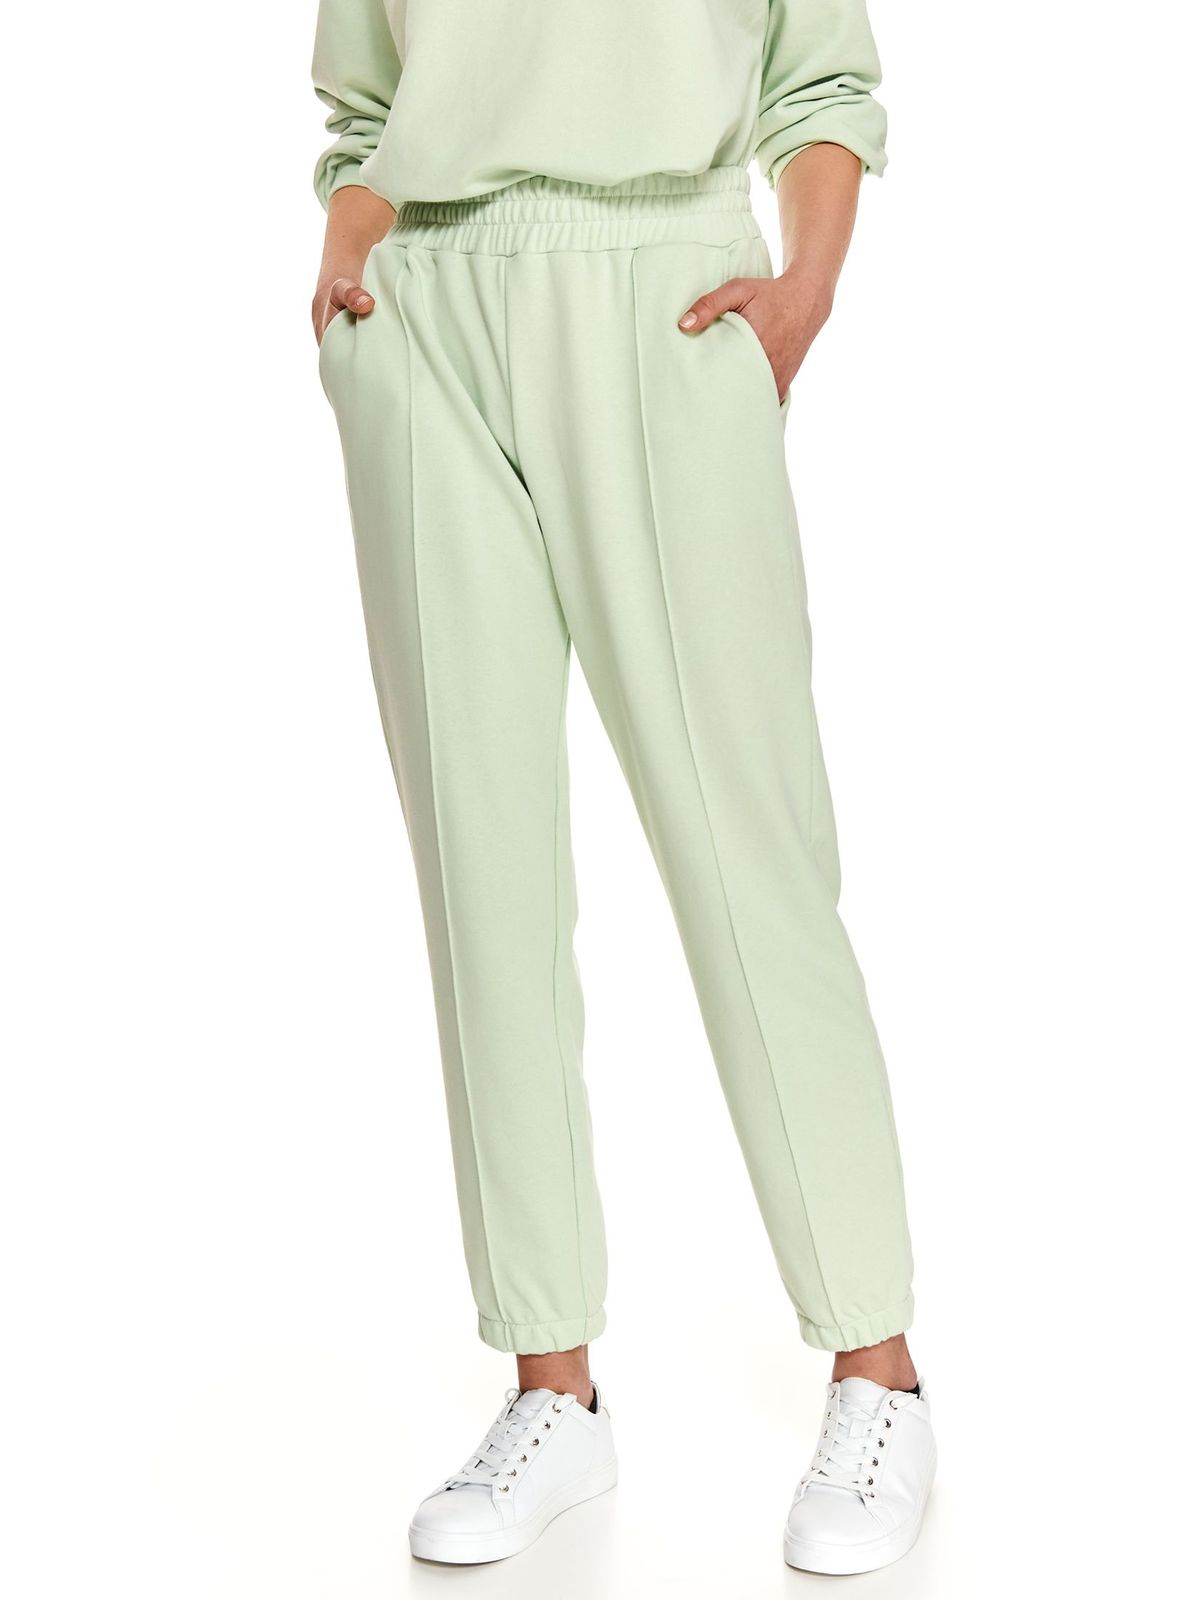 Green trousers casual loose fit with elastic waist